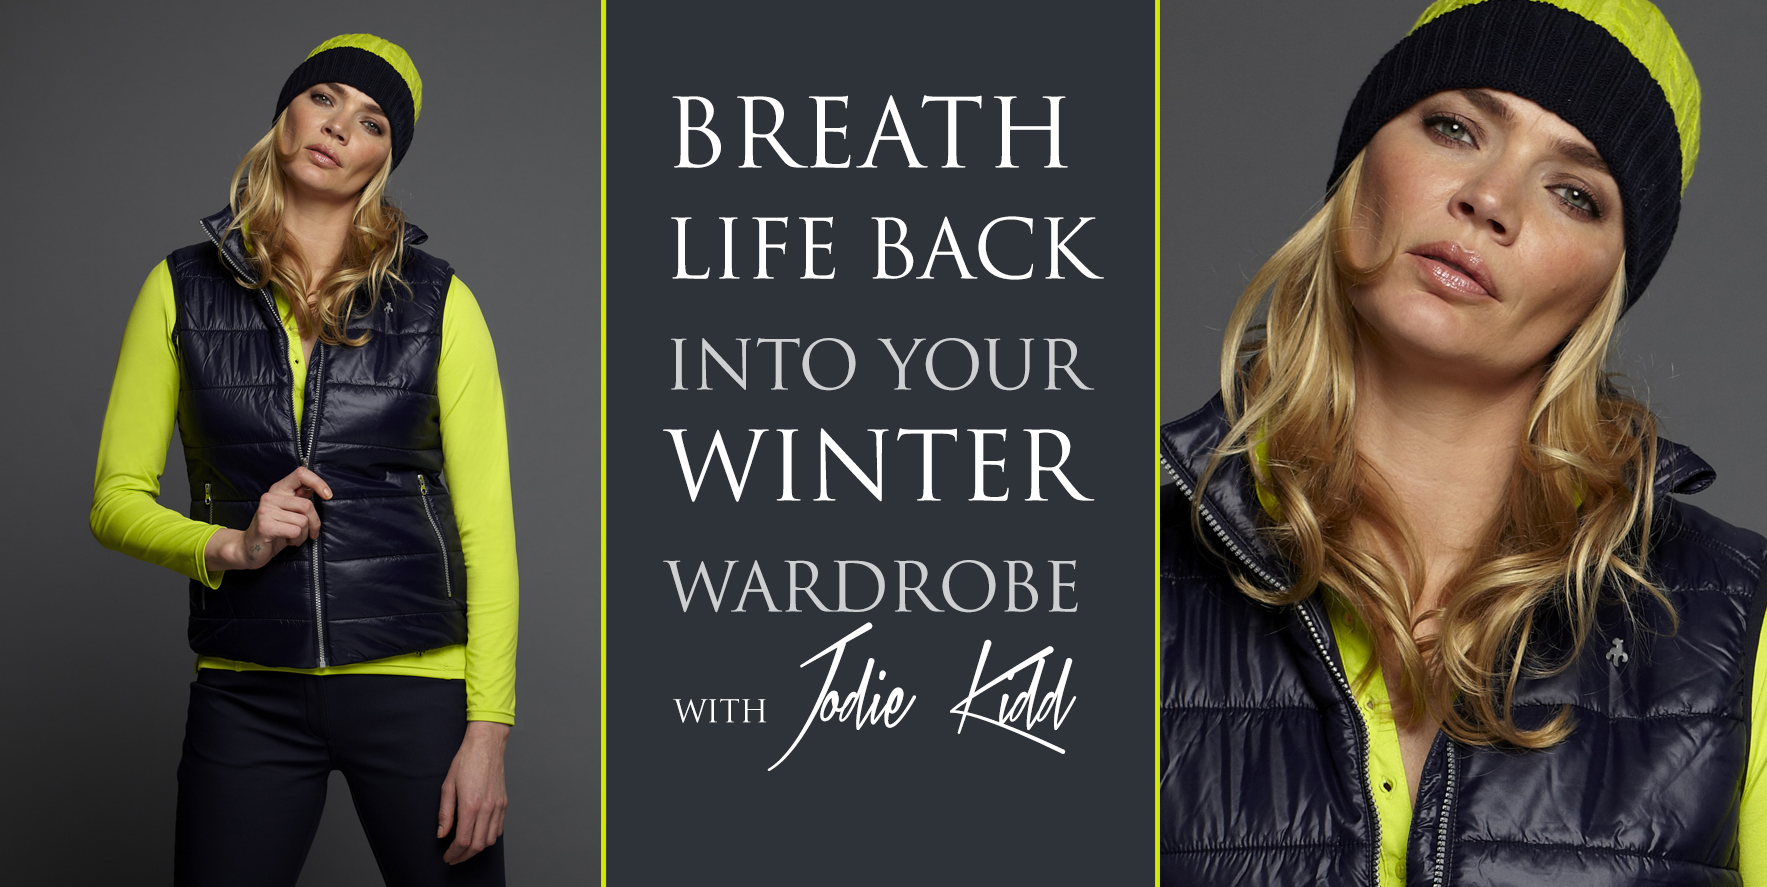 Breath life back into your winter